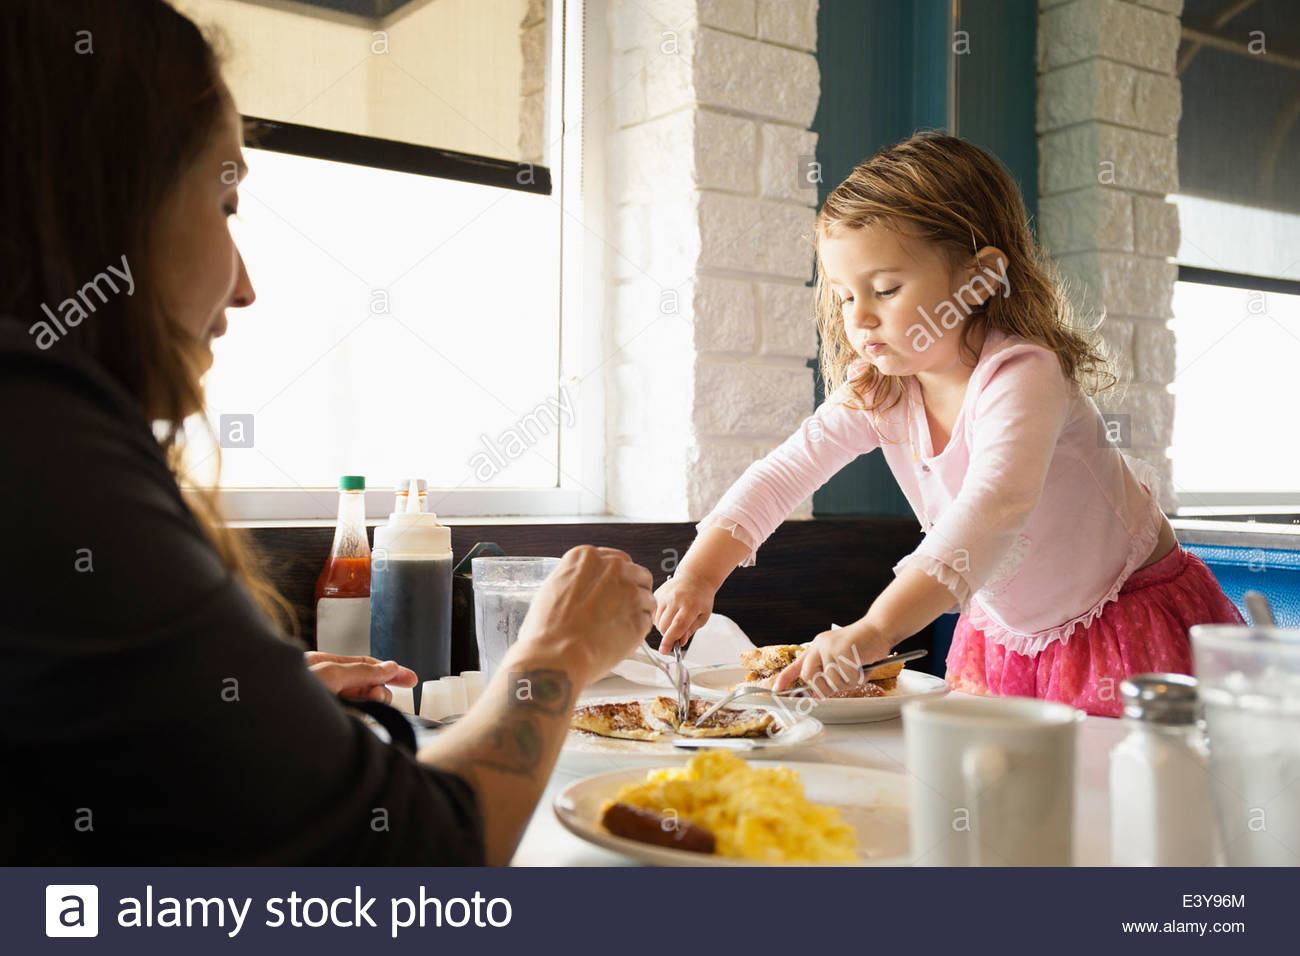 Mother and toddler daughter eating in diner Stock Photo